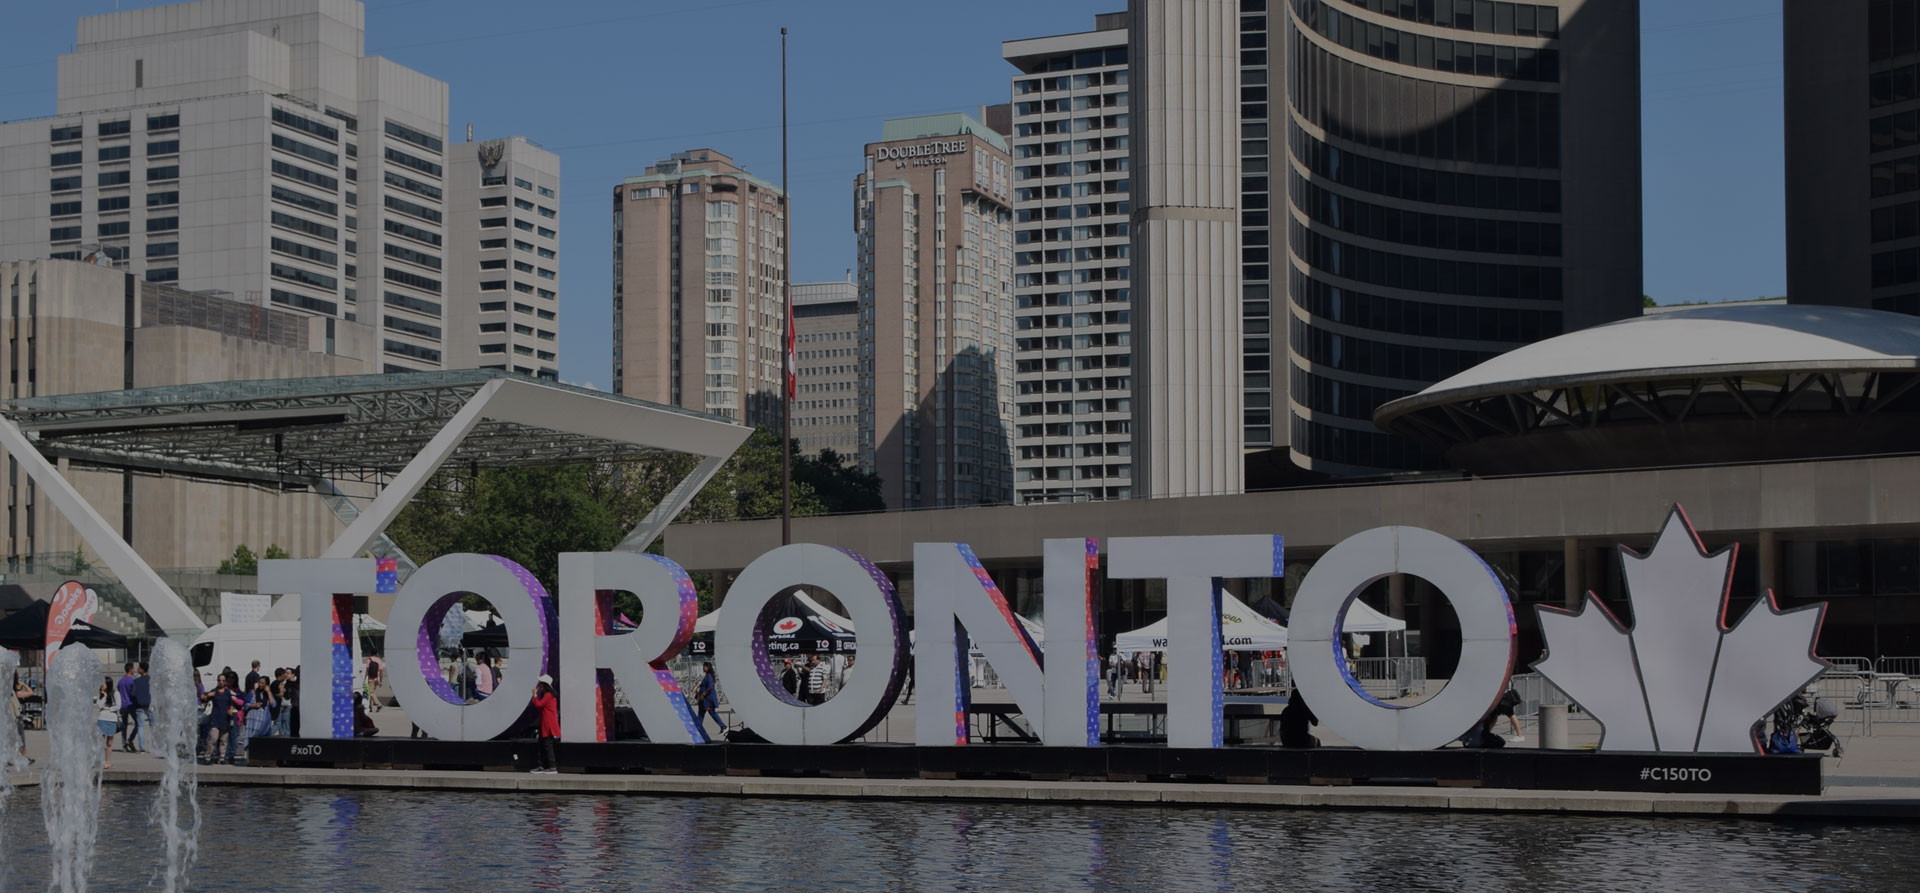 Toronto sign in front of City Hall, Toronto Ontario